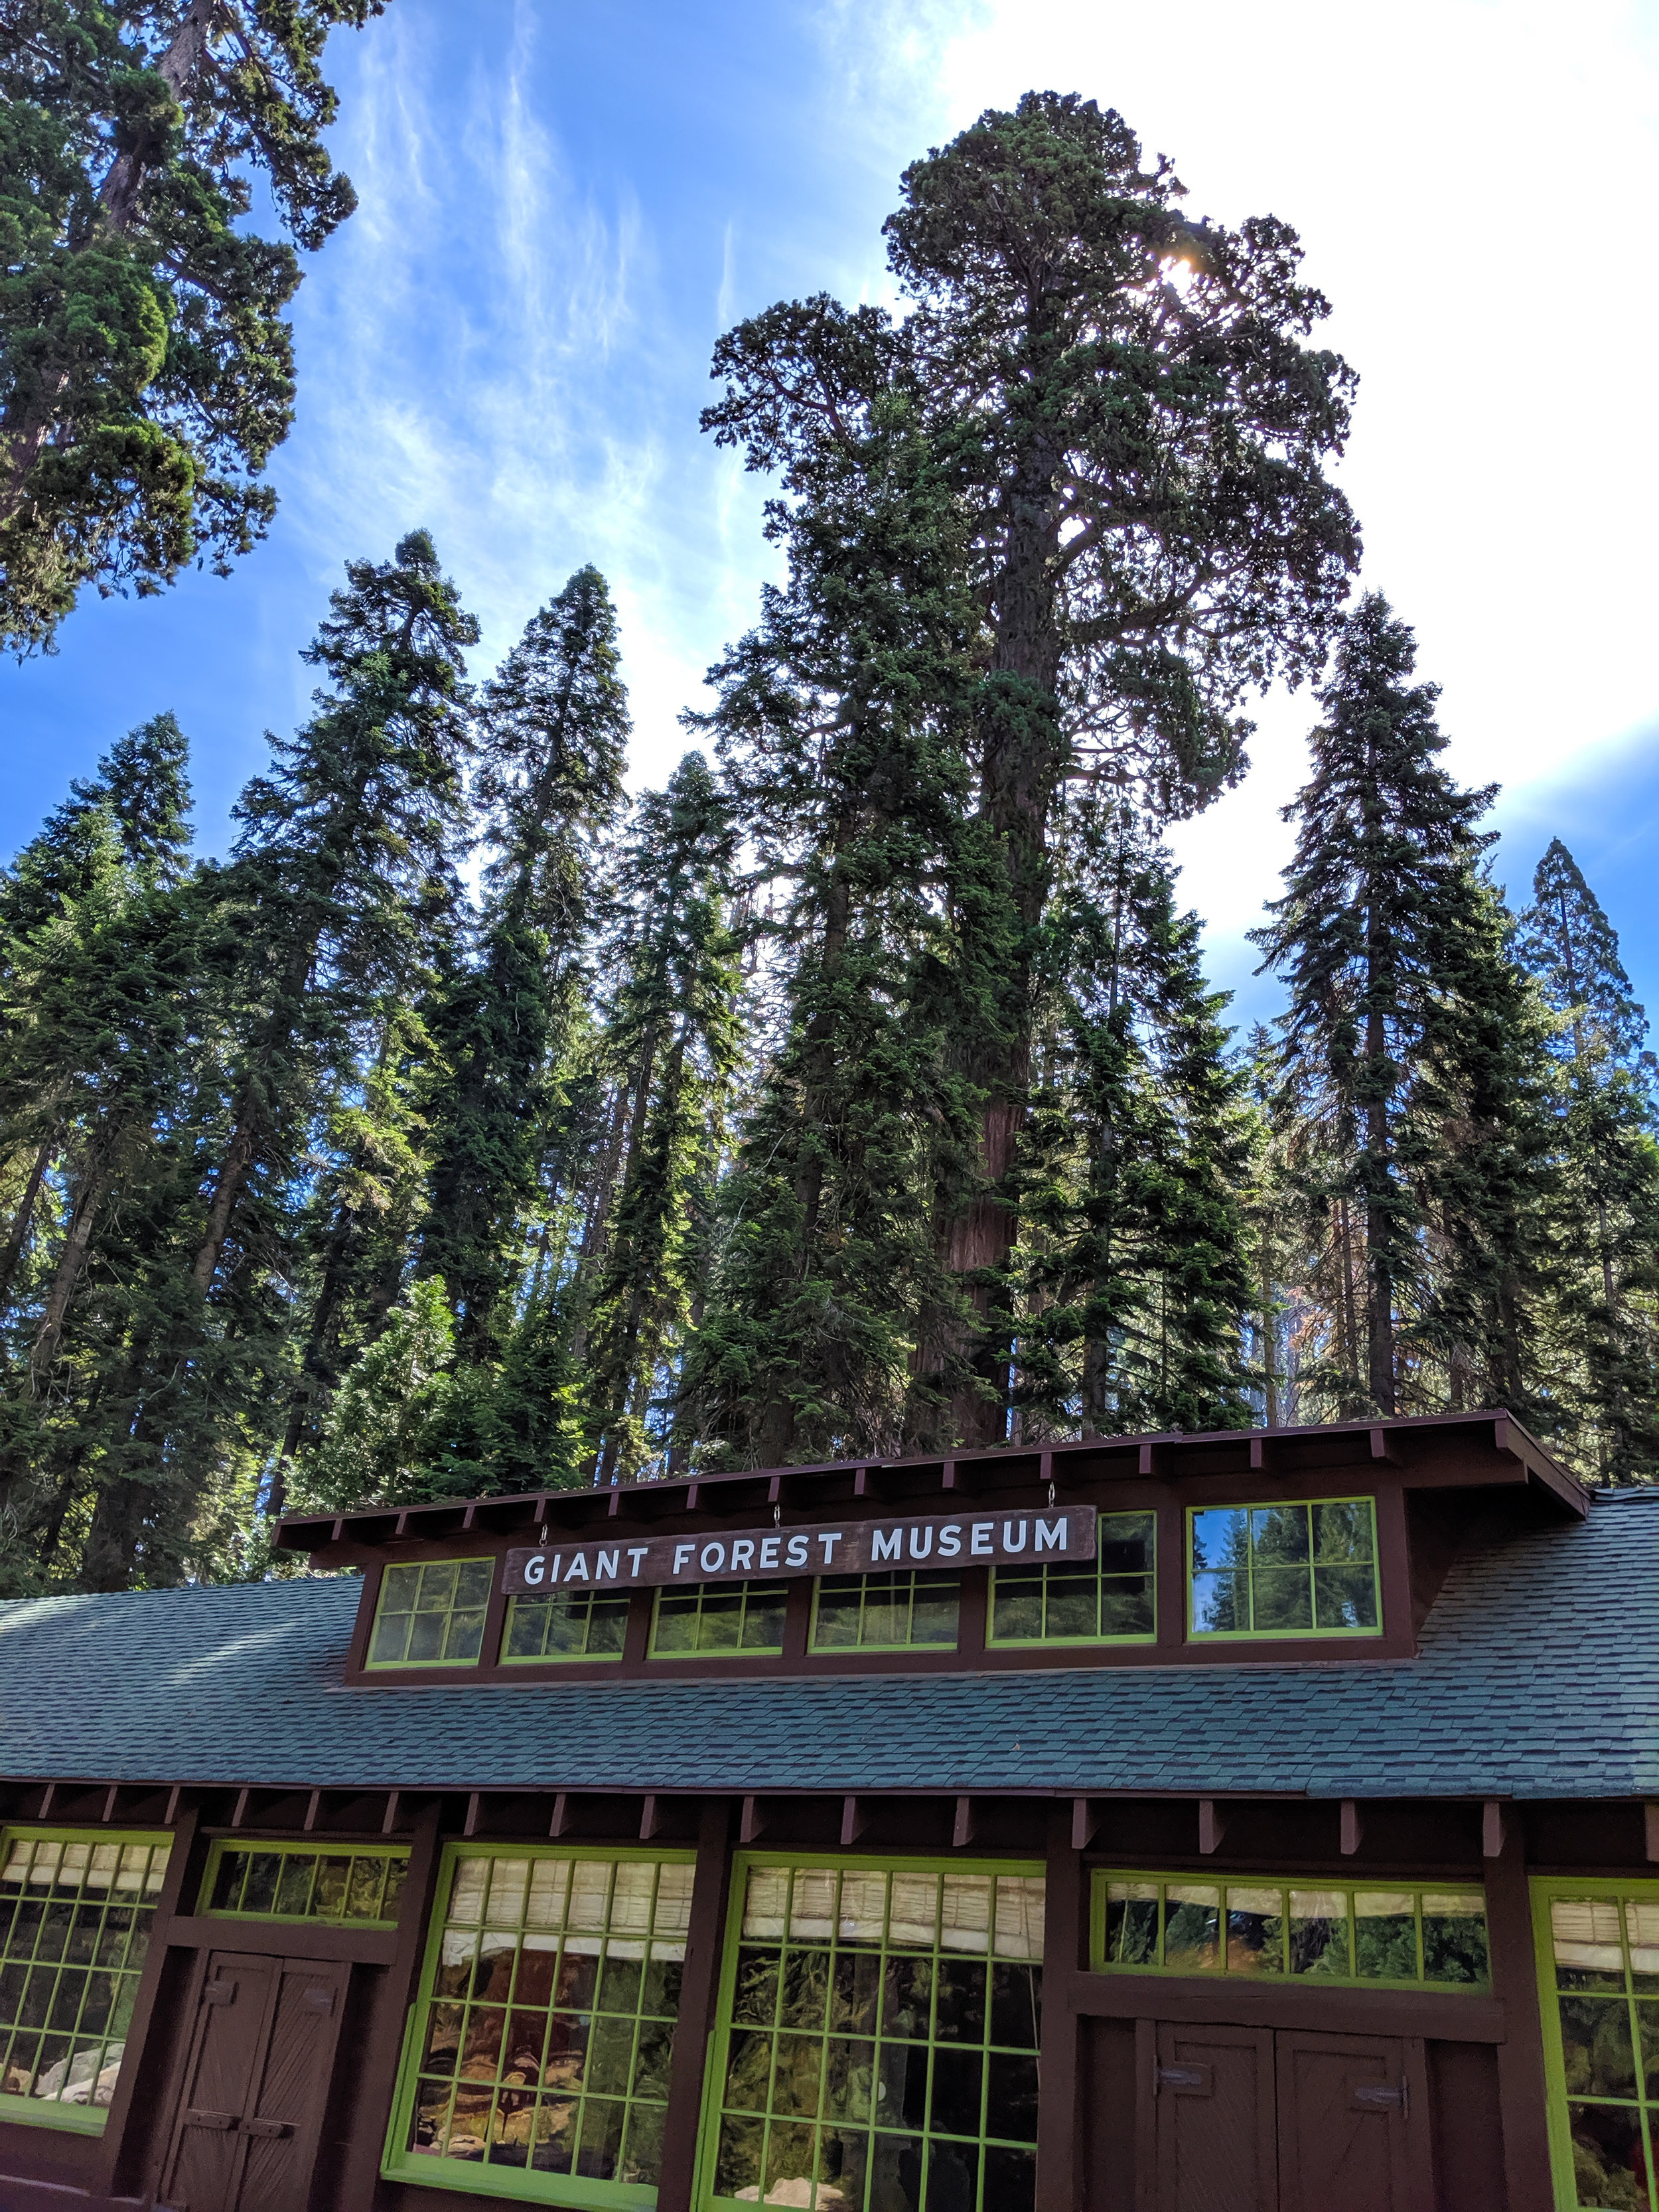 Giant Forest Museum, Giant Forest, Sequoia, Giant Sequoias, Sequoia National Park, CA National Parks